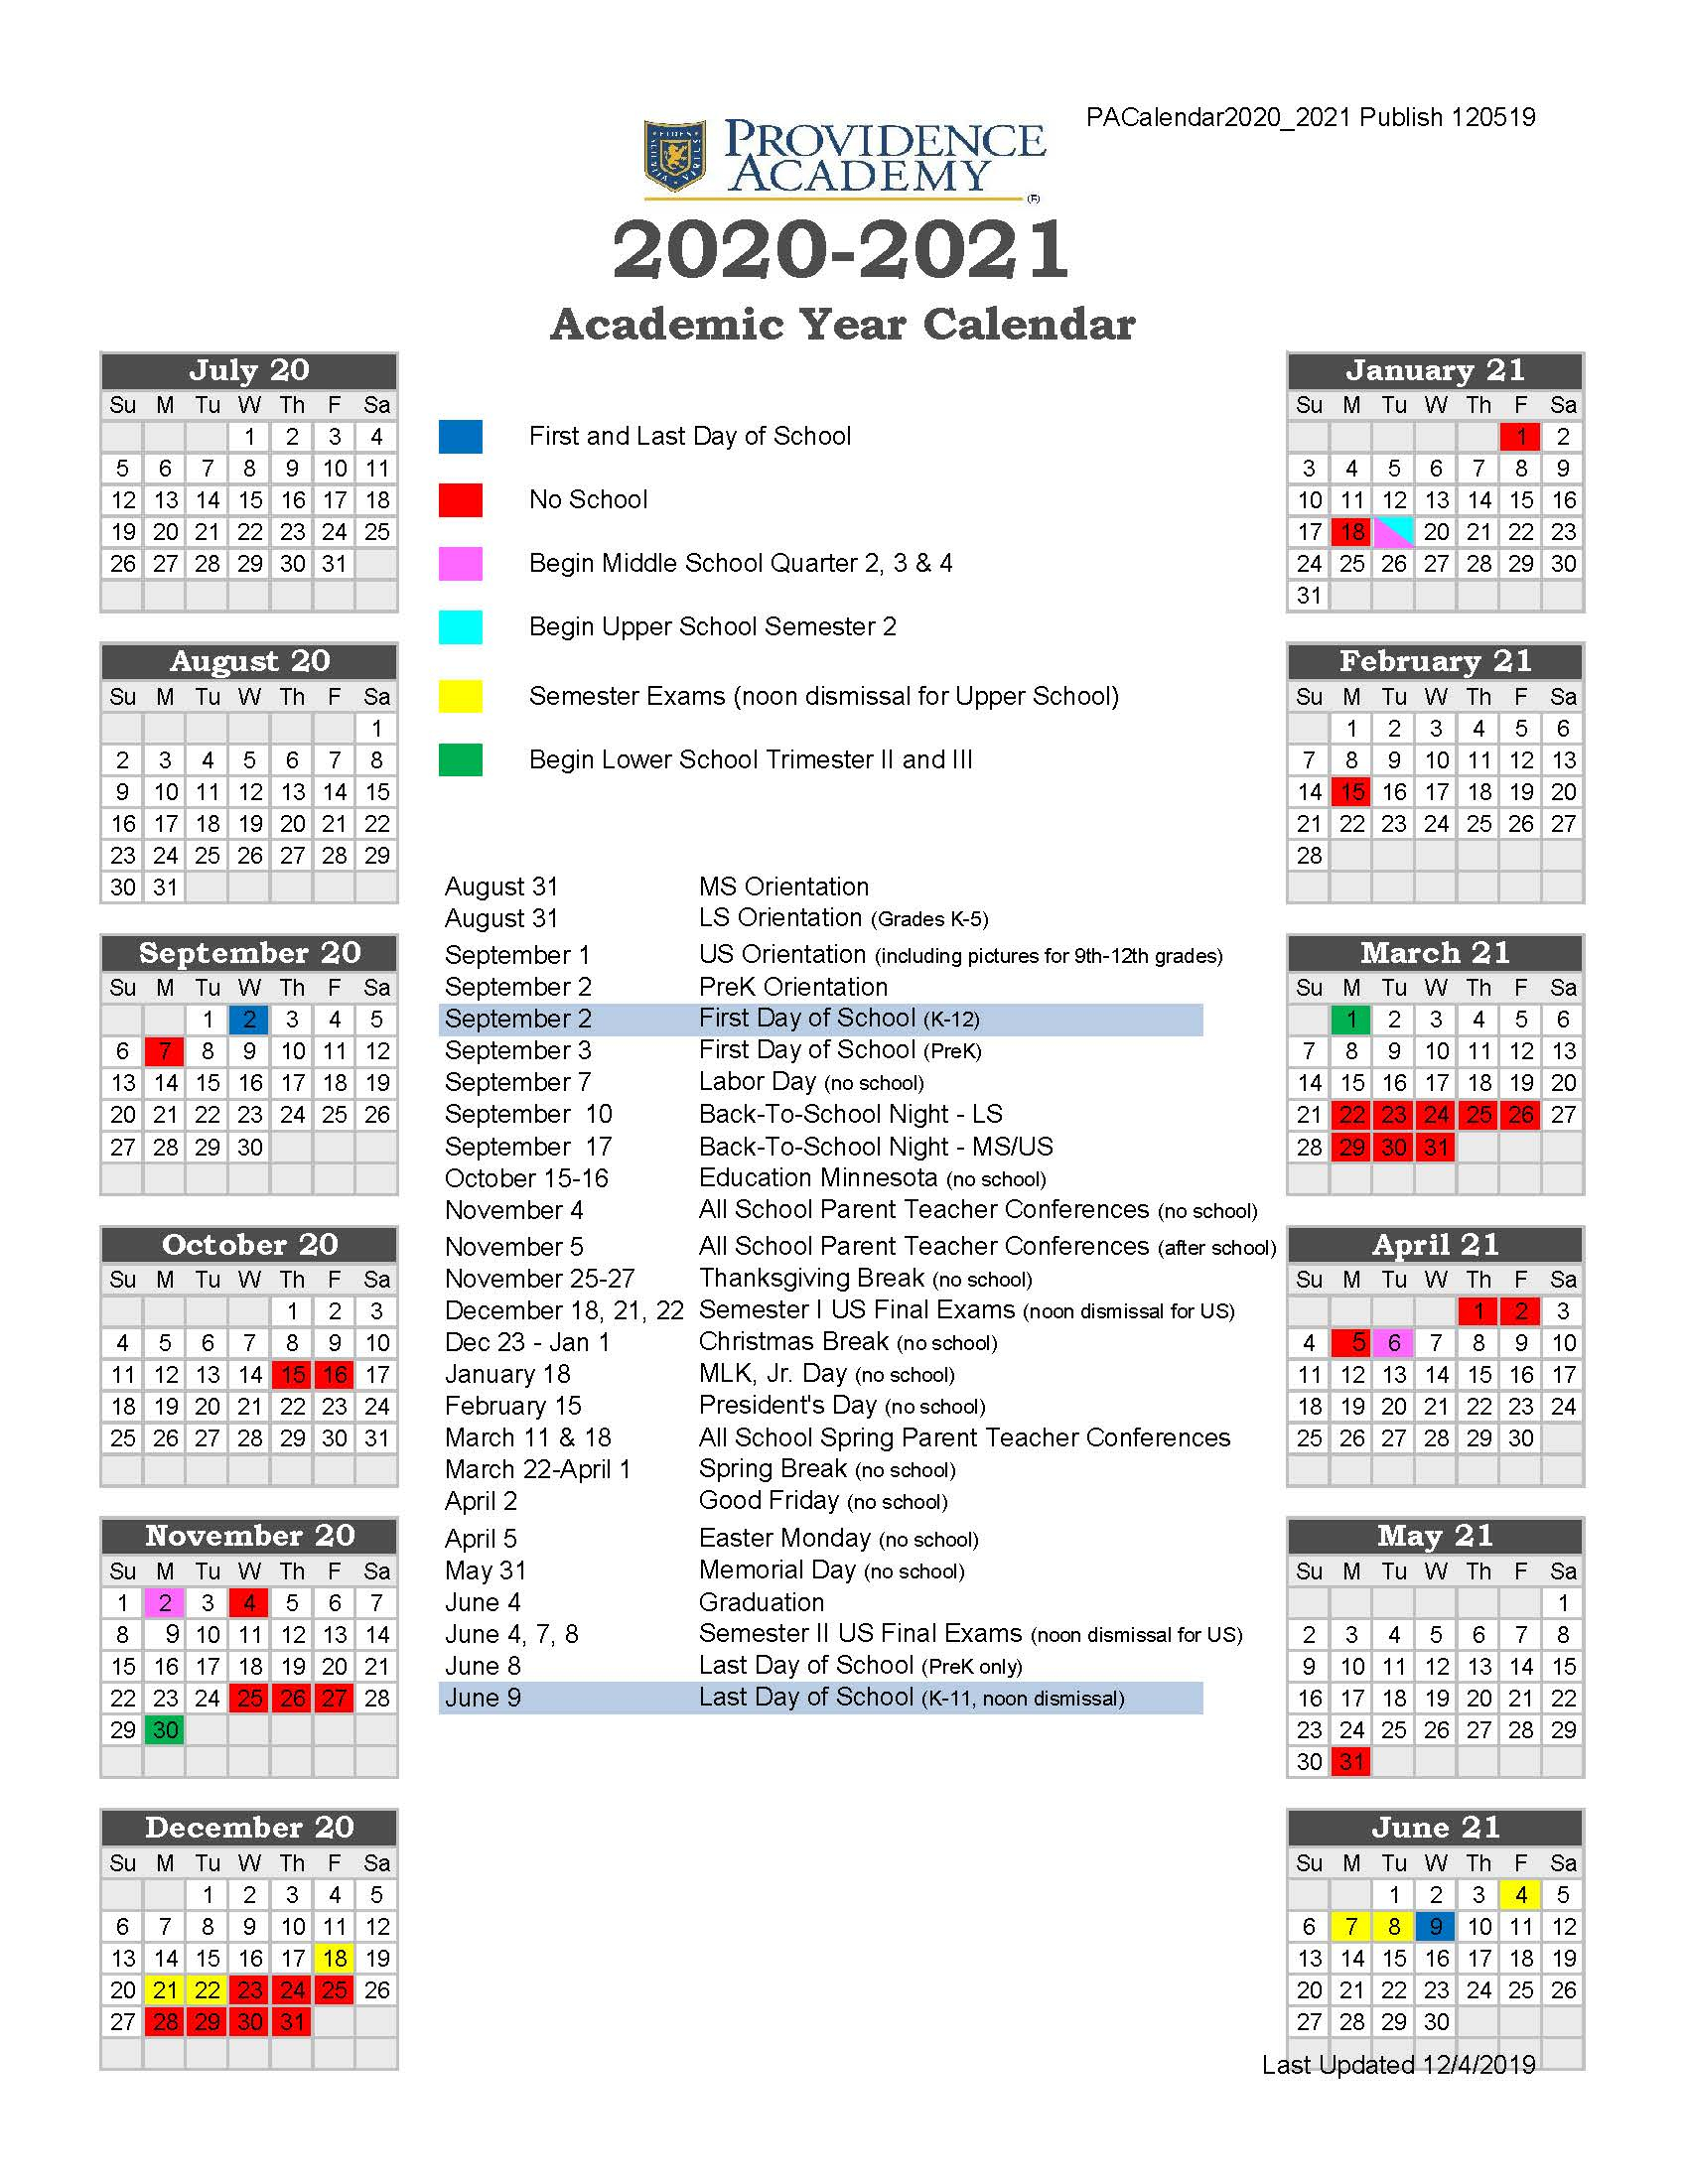 Academic Calendar - Providence Academy in University Of Minnesota2020-2021 Academic Calendar